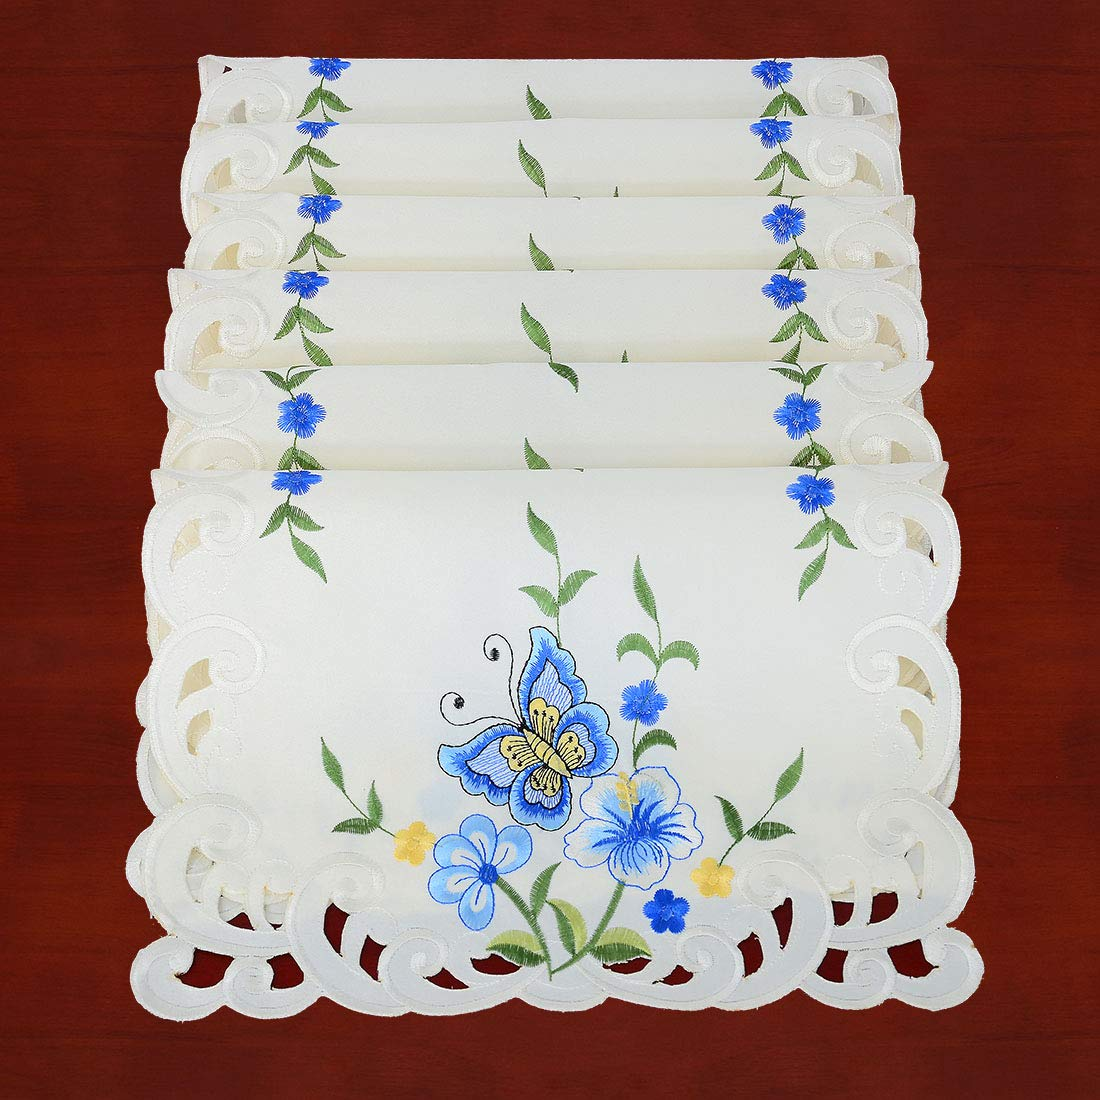 Simhomsen Decorative Butterfly and Floral Table Place Mats (Blue, 13 × 19 Inch Set of 6)